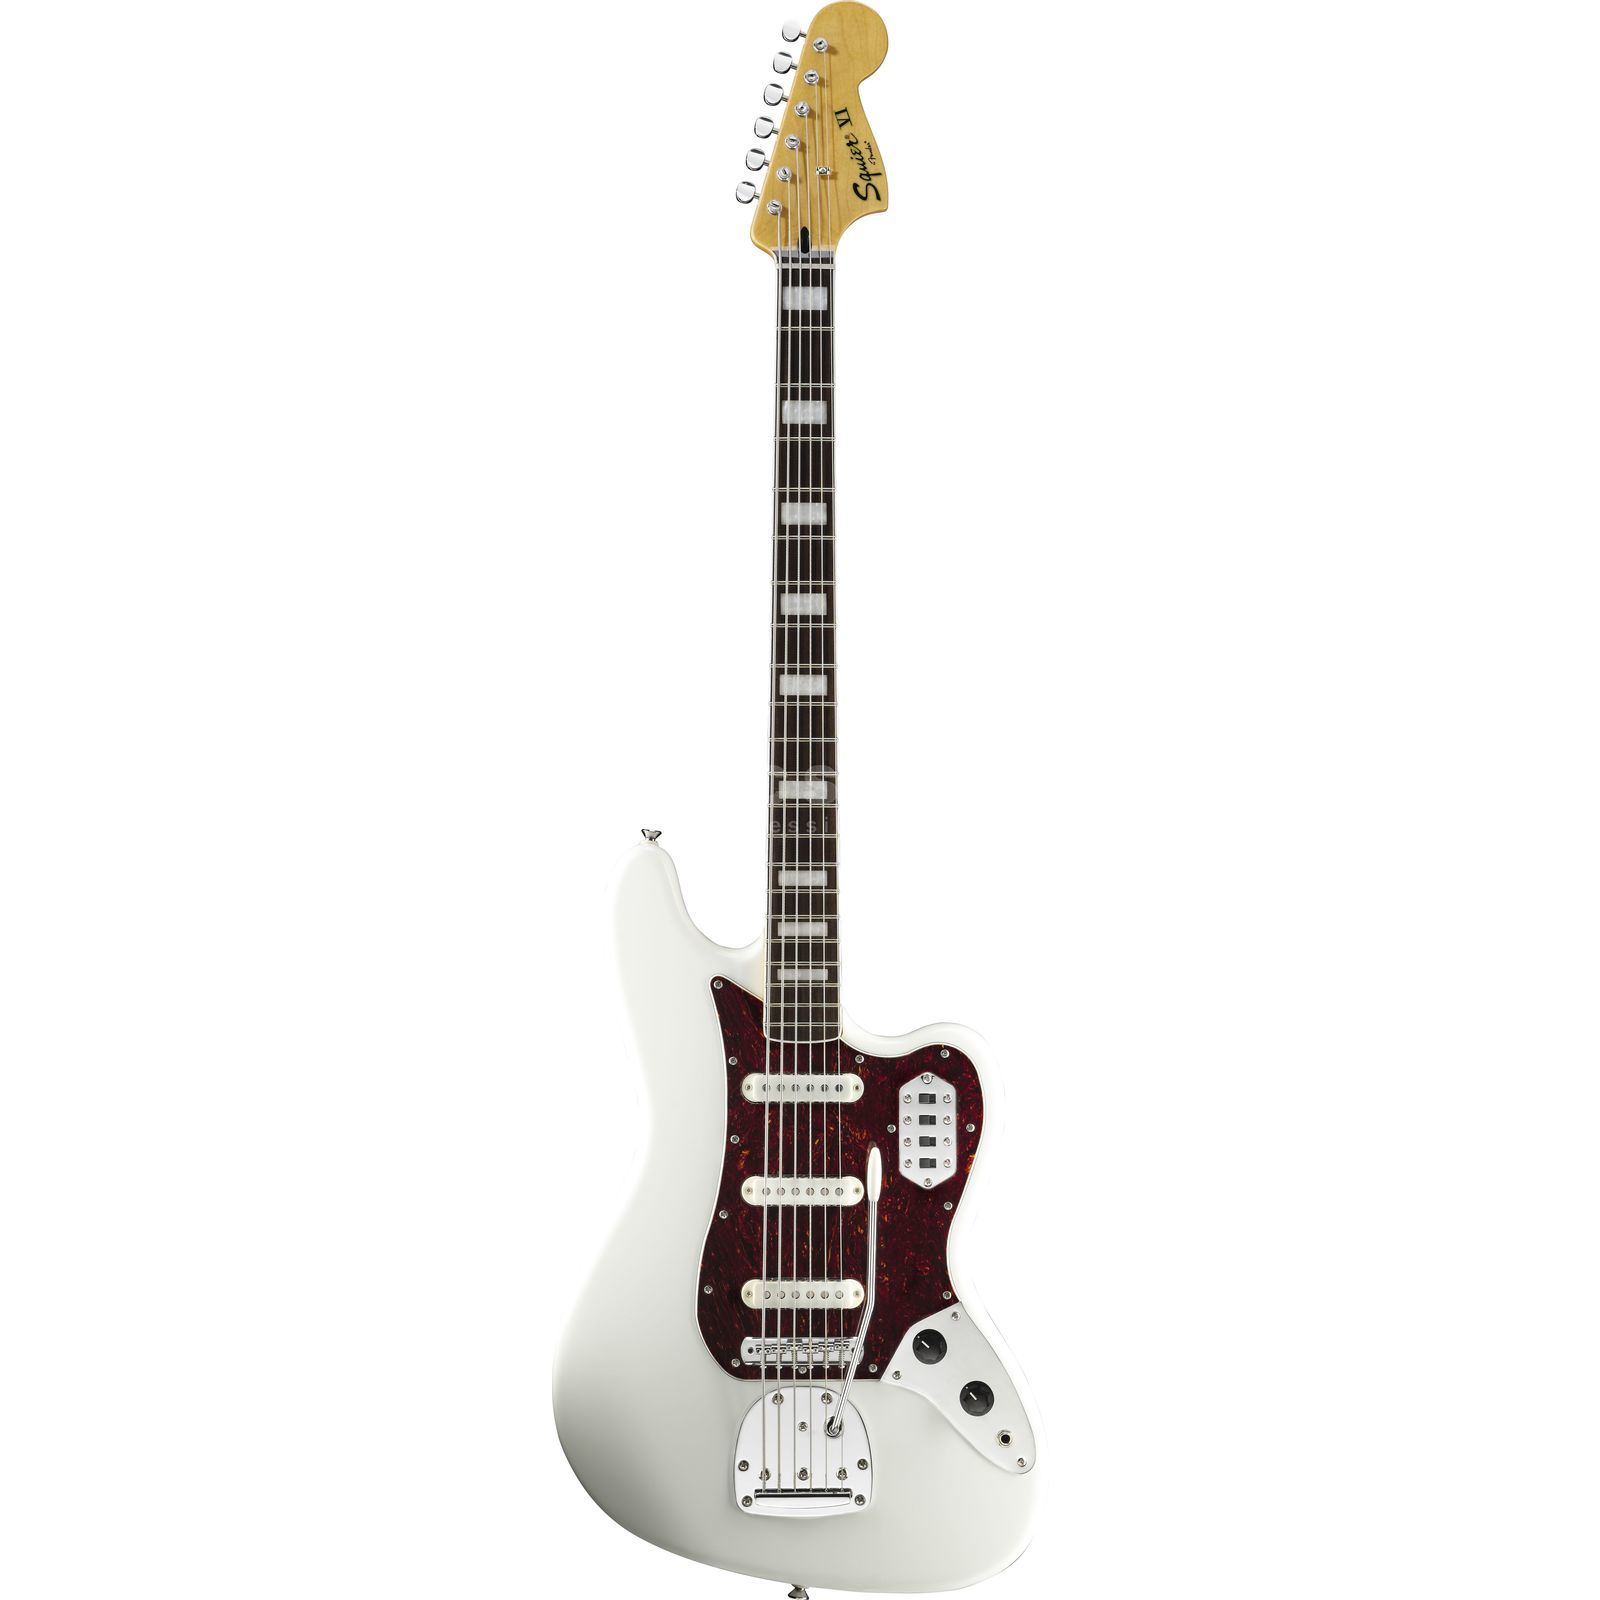 Fender Squier VM bas VI RW OWH Olympic wit Productafbeelding